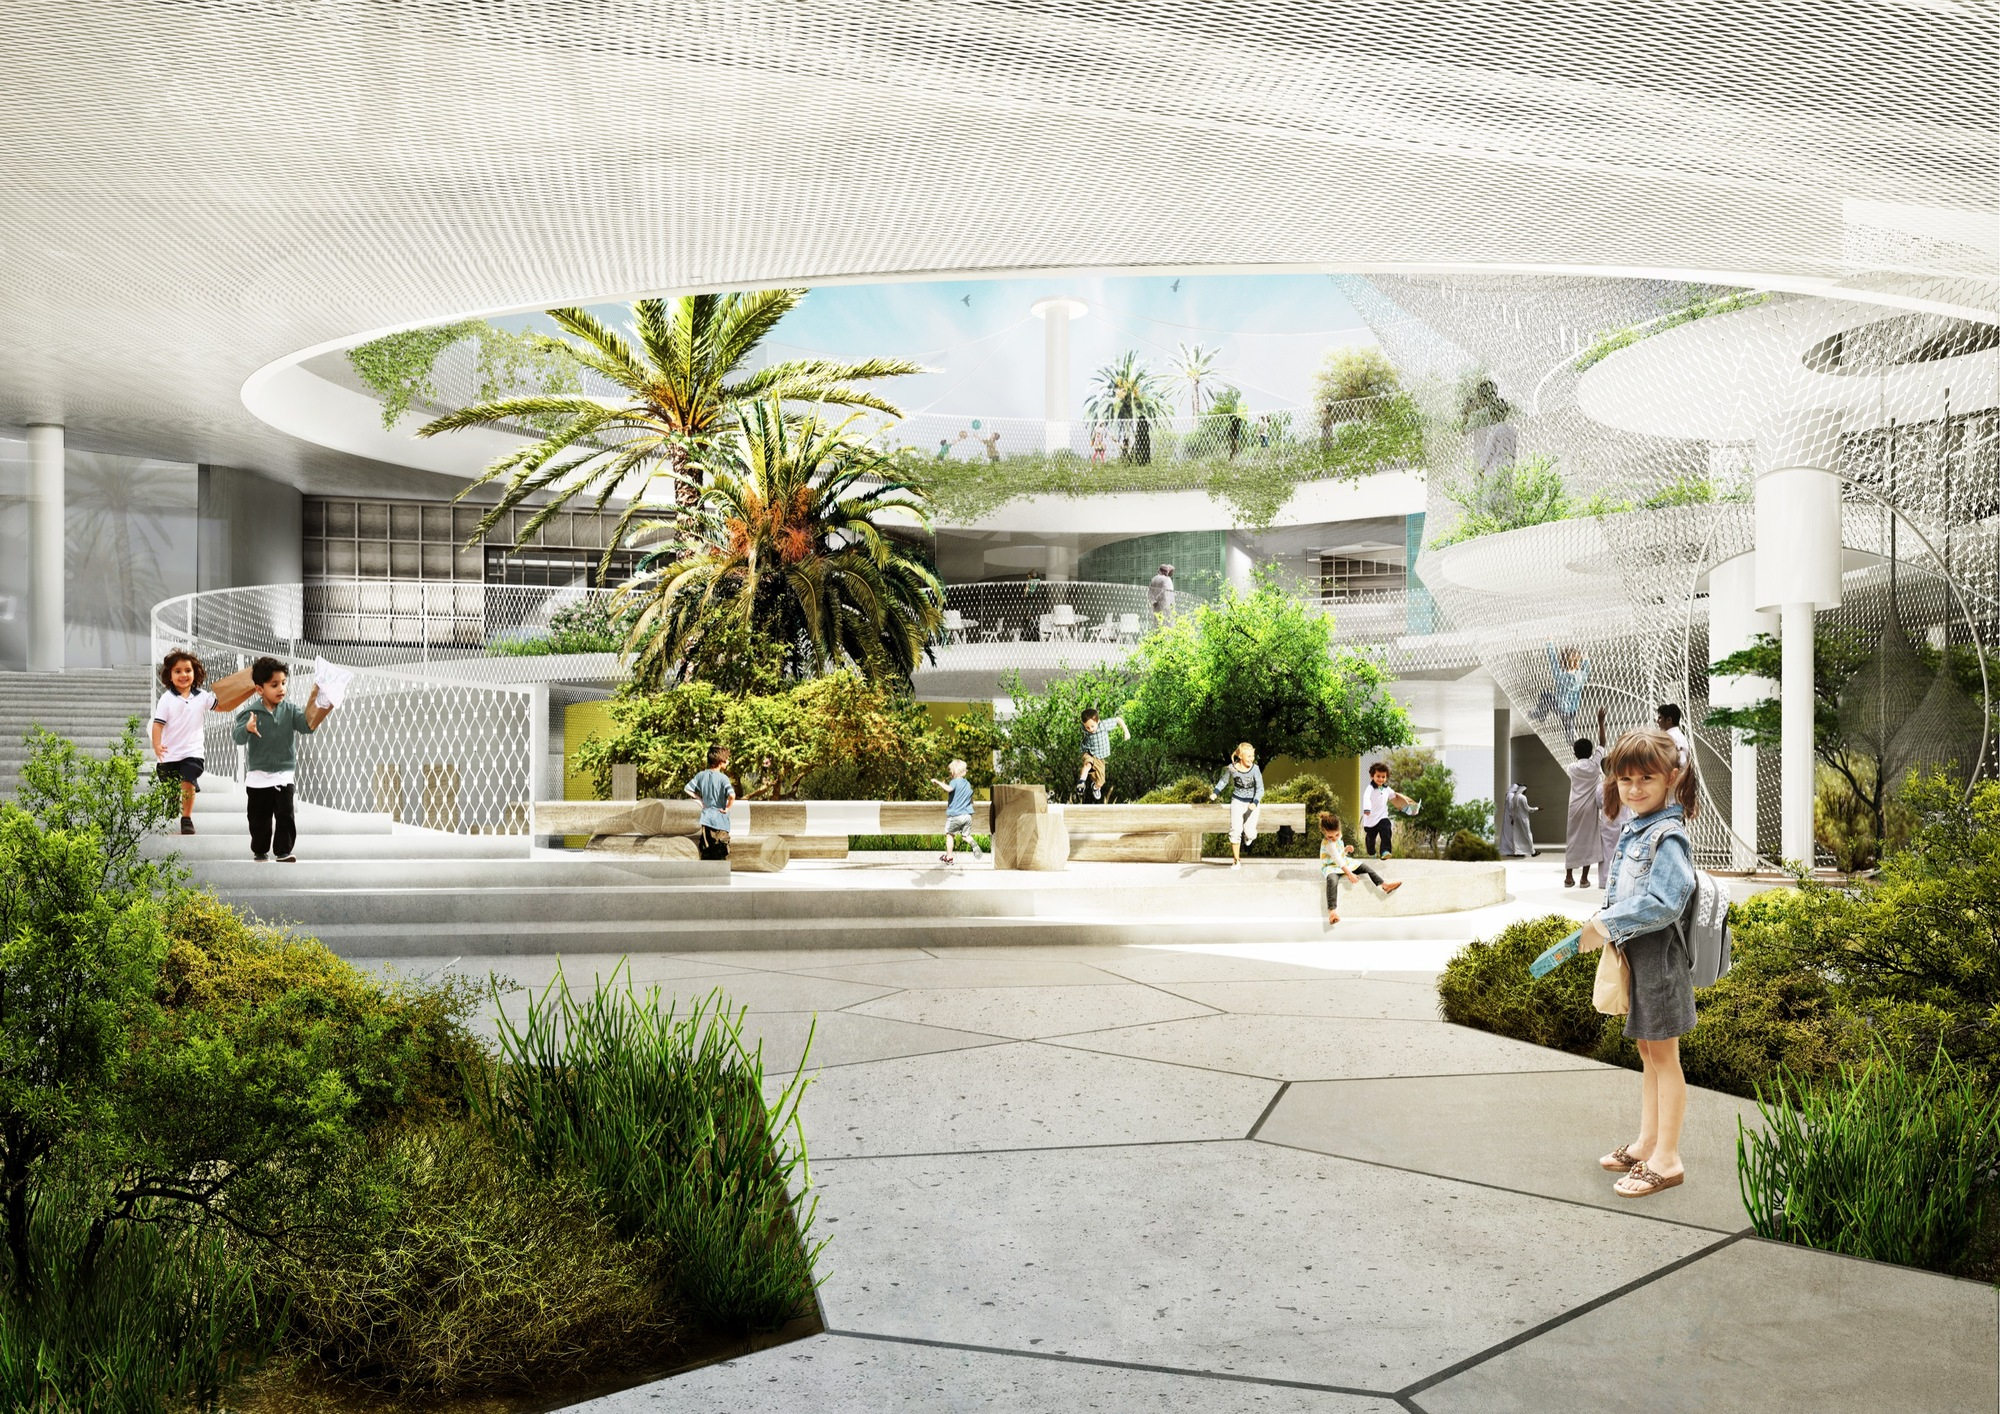 Garden Design School gallery of cebra and sla design a school for the sustainable city